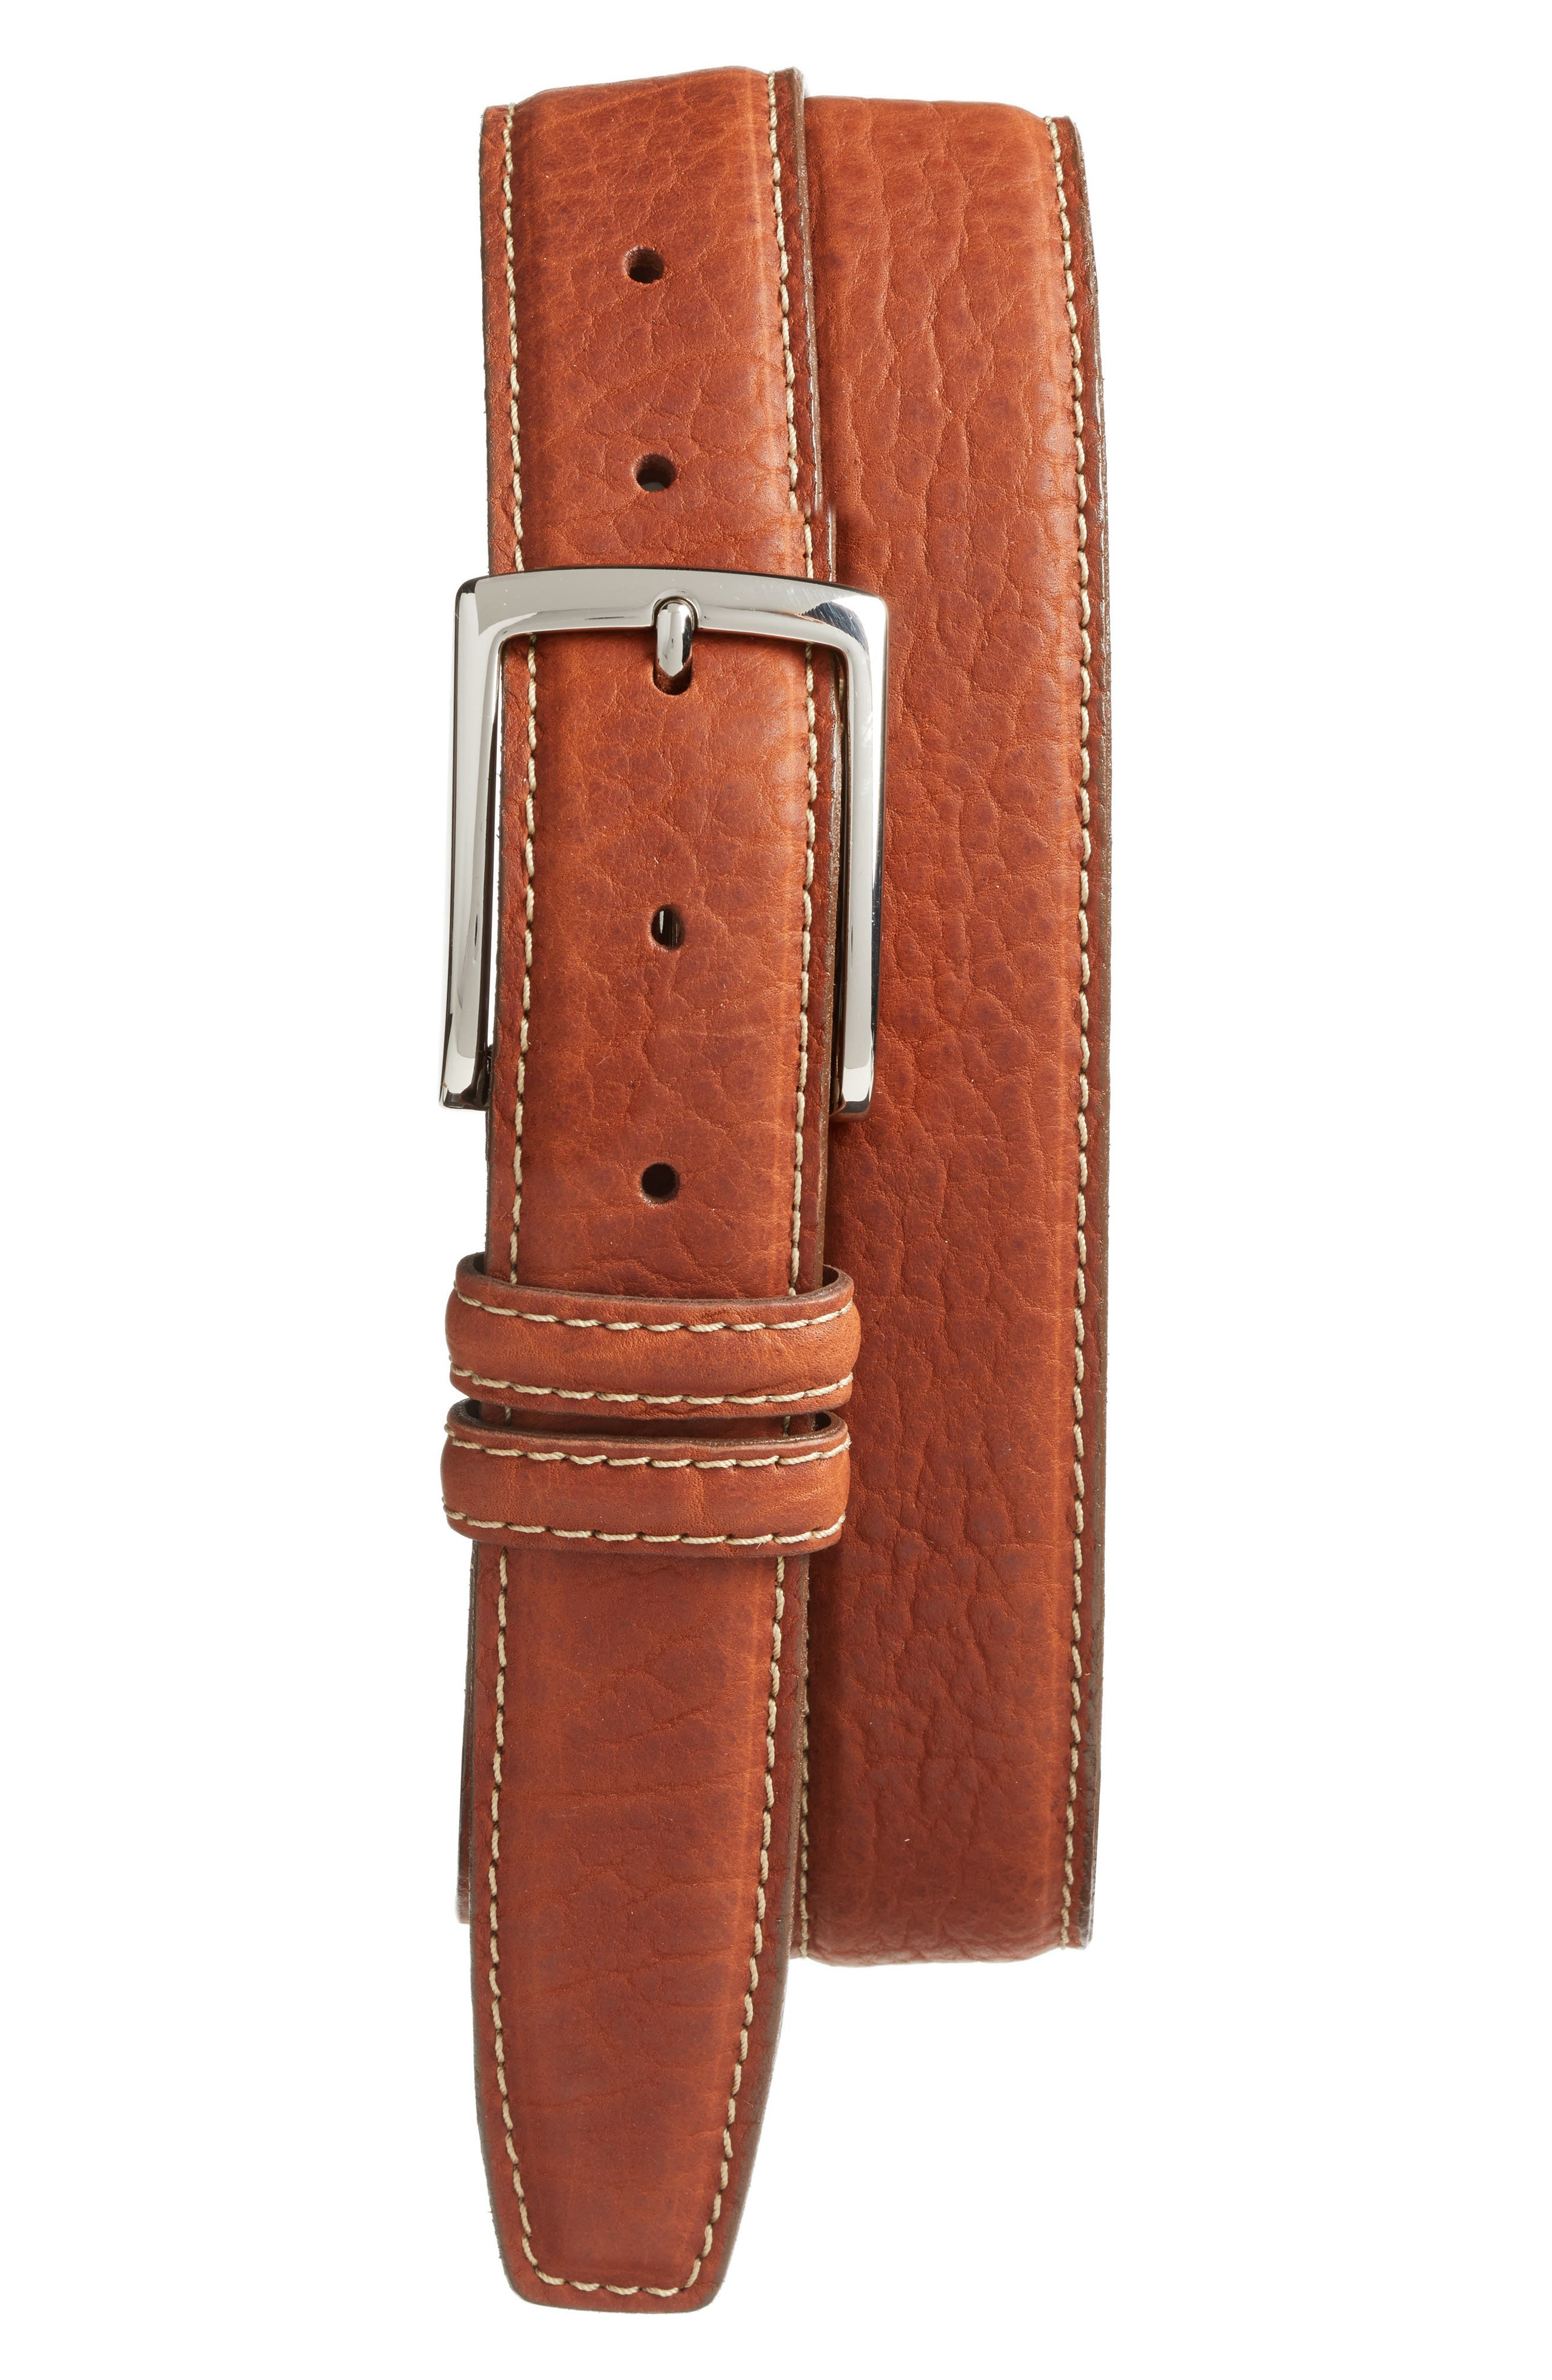 Alternate Image 1 Selected - Torino Belts Leather Belt